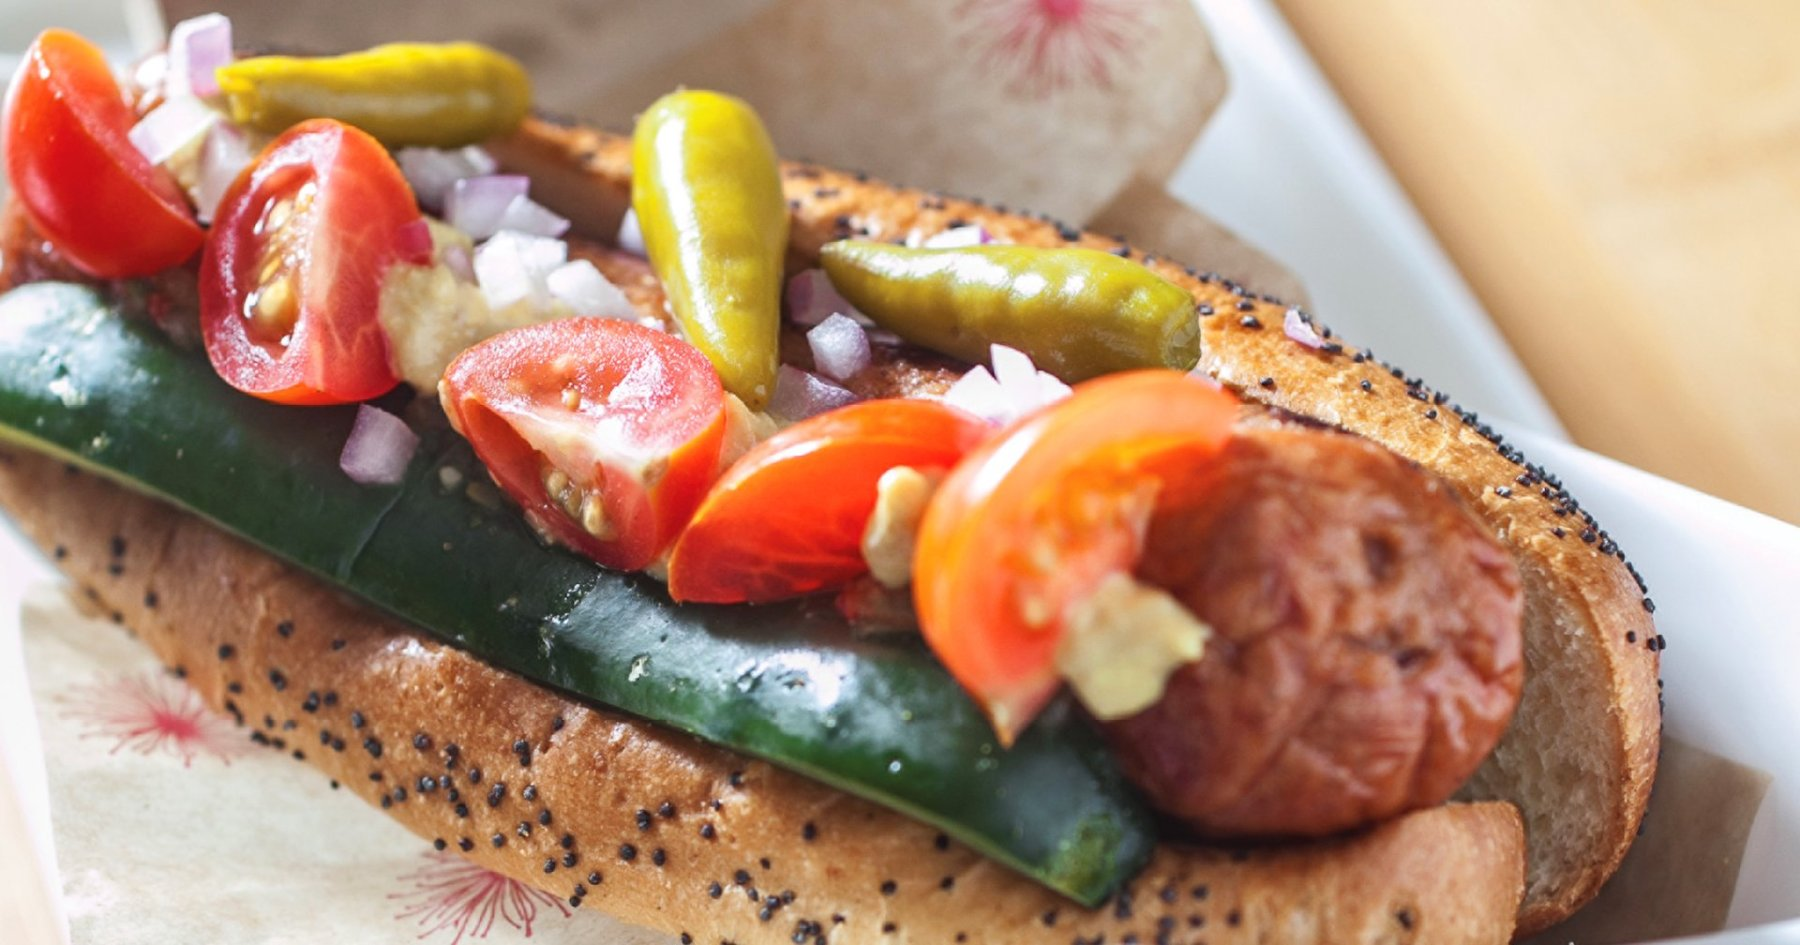 The 7 Best Gourmet Hot Dogs in Chicago